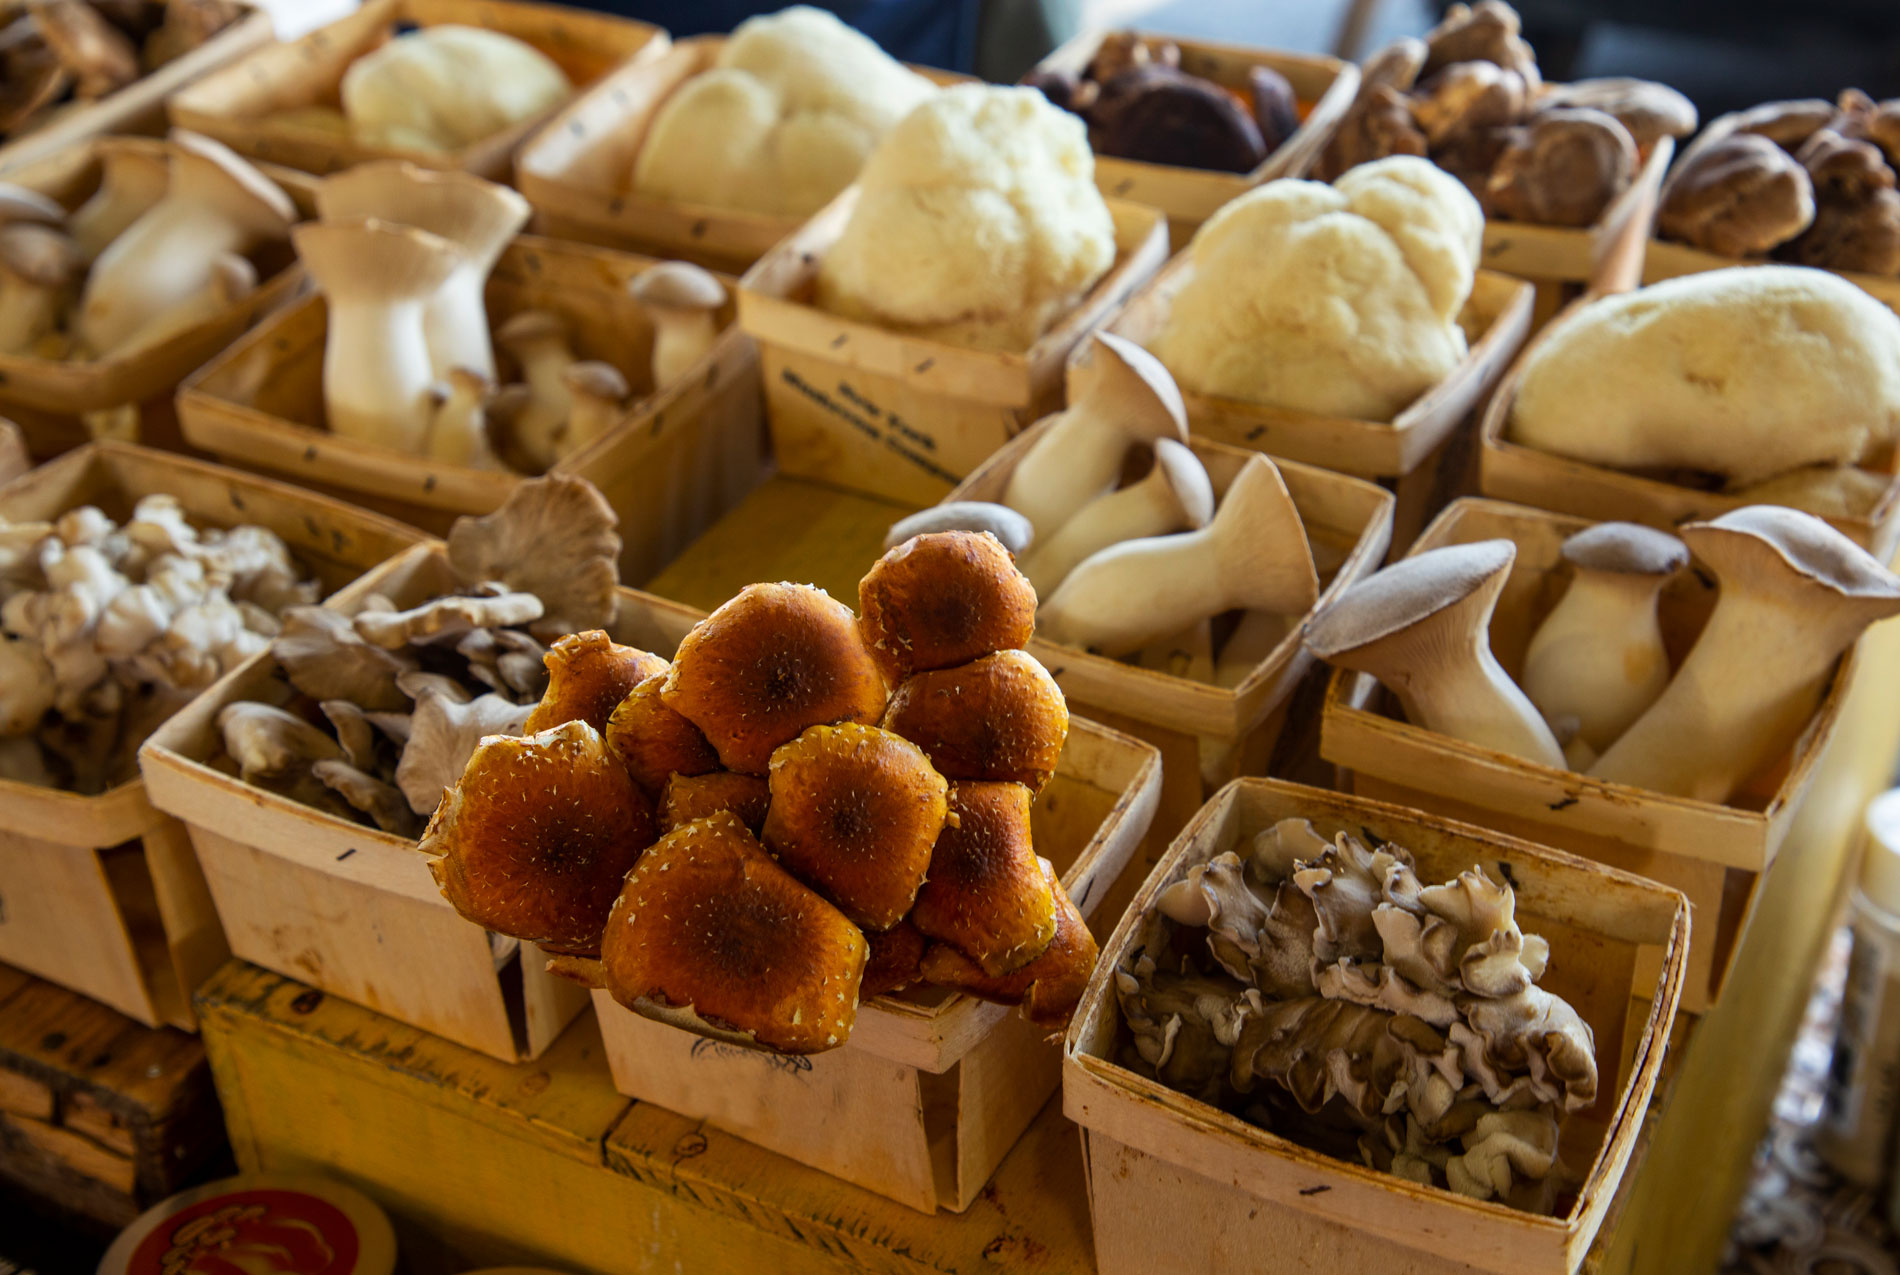 A variety of mushrooms set about in their own individual boxes.